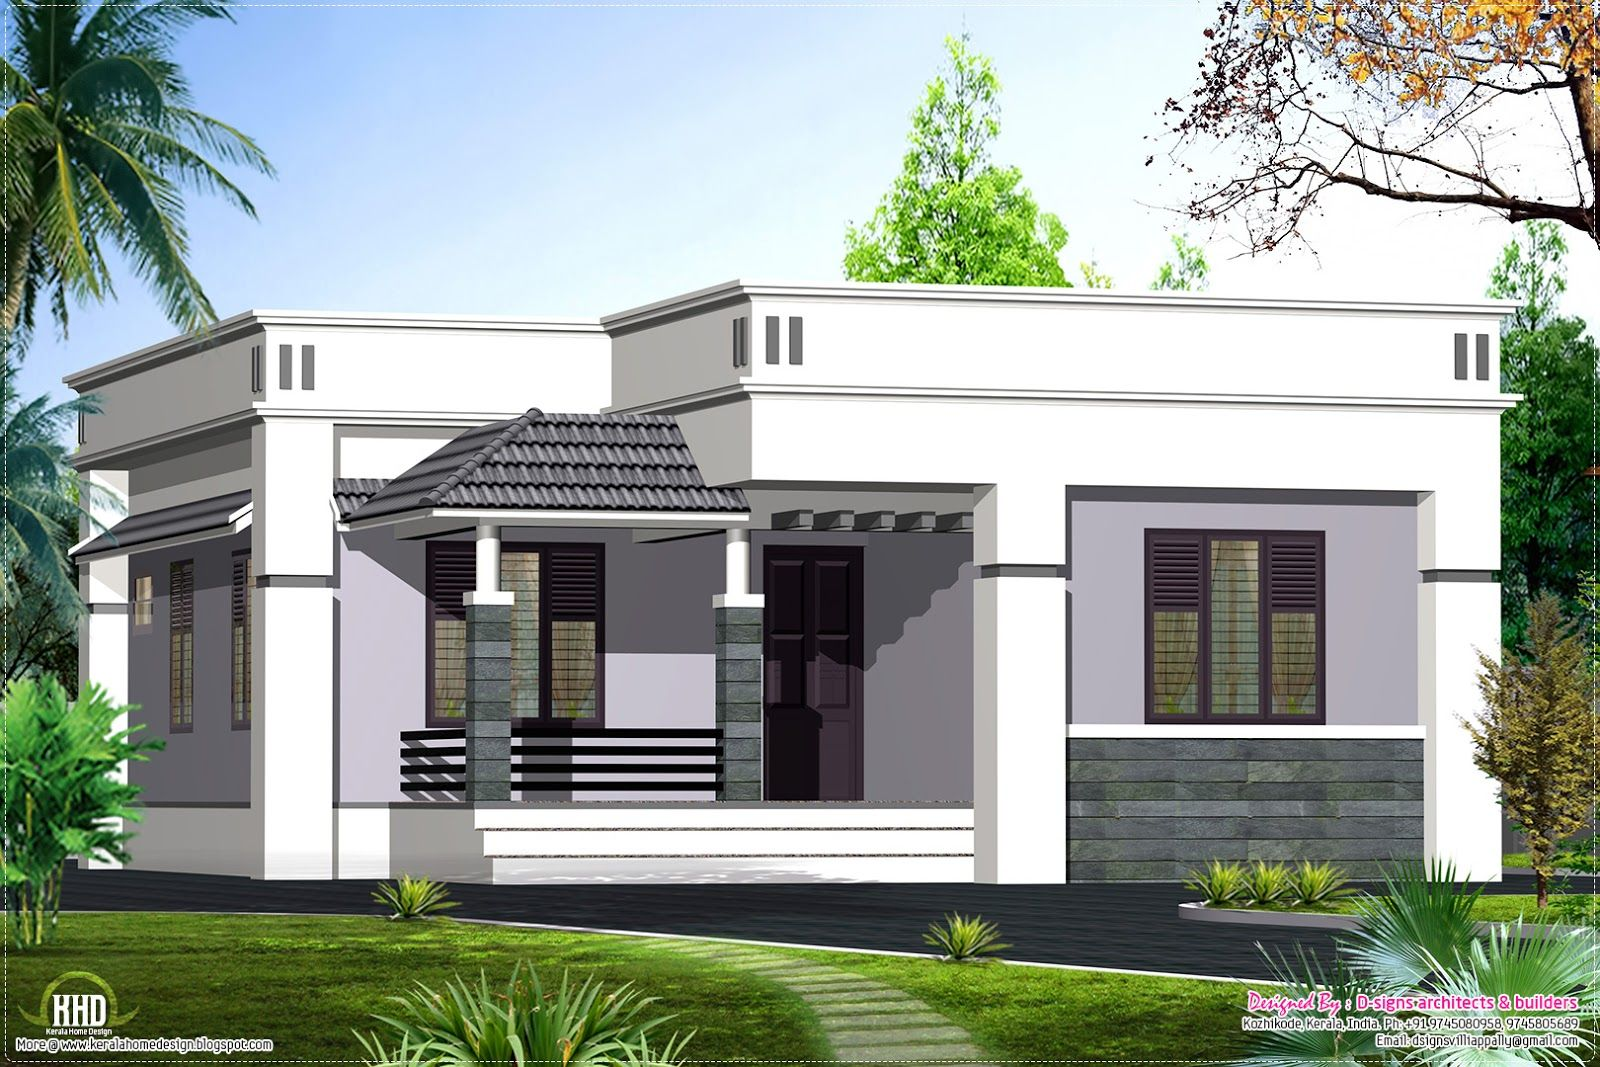 Floor house design feet kerala home and plans modern single storey beautiful south facing also suresh unni sureshunni on pinterest rh